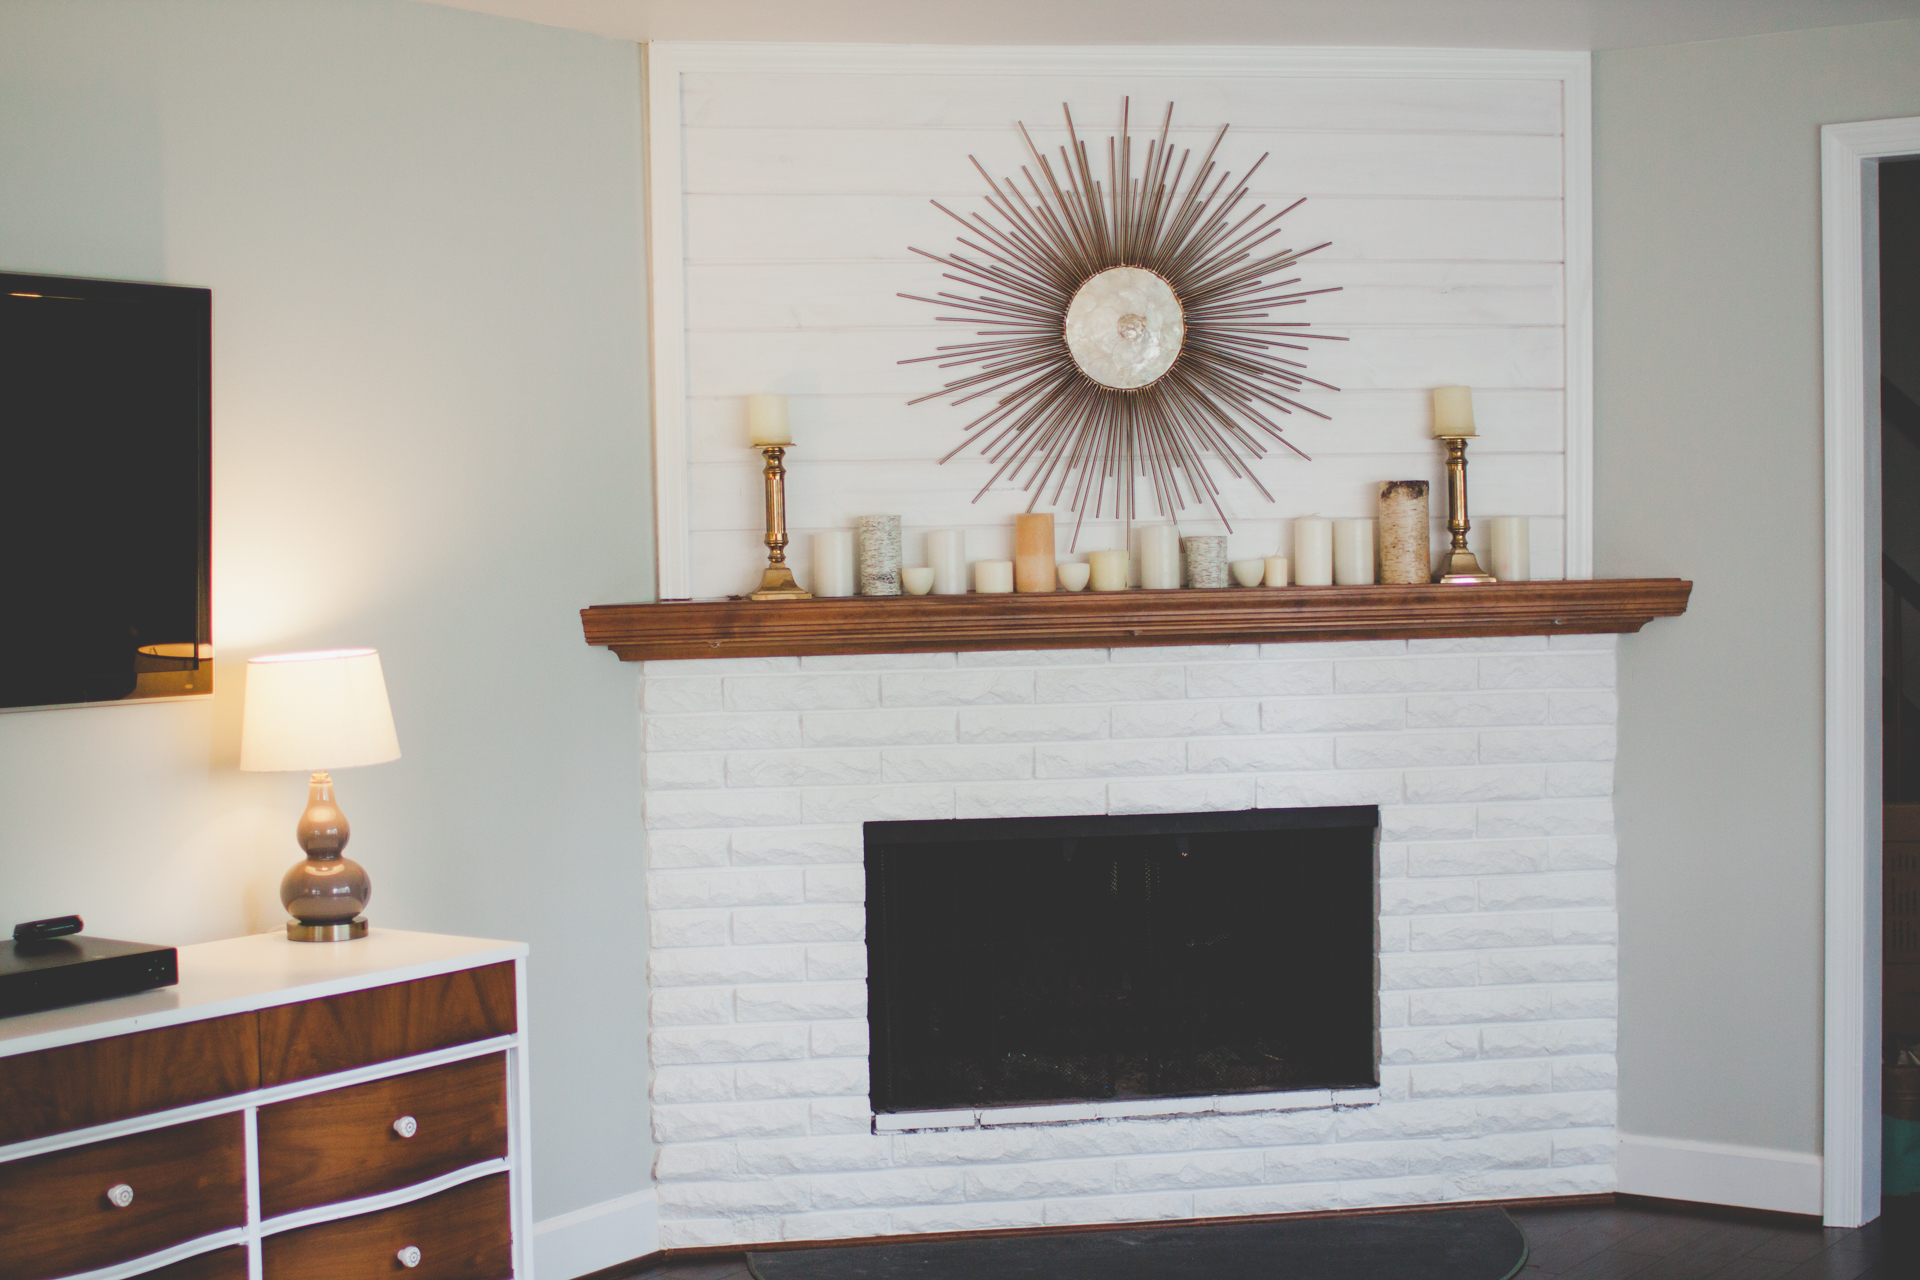 AFTER: One of my favorite transformations! Removed the old giant mirror, added white washed shiplap, painted the dank 70s tile white, painted the inside of the fireplace and hardware.